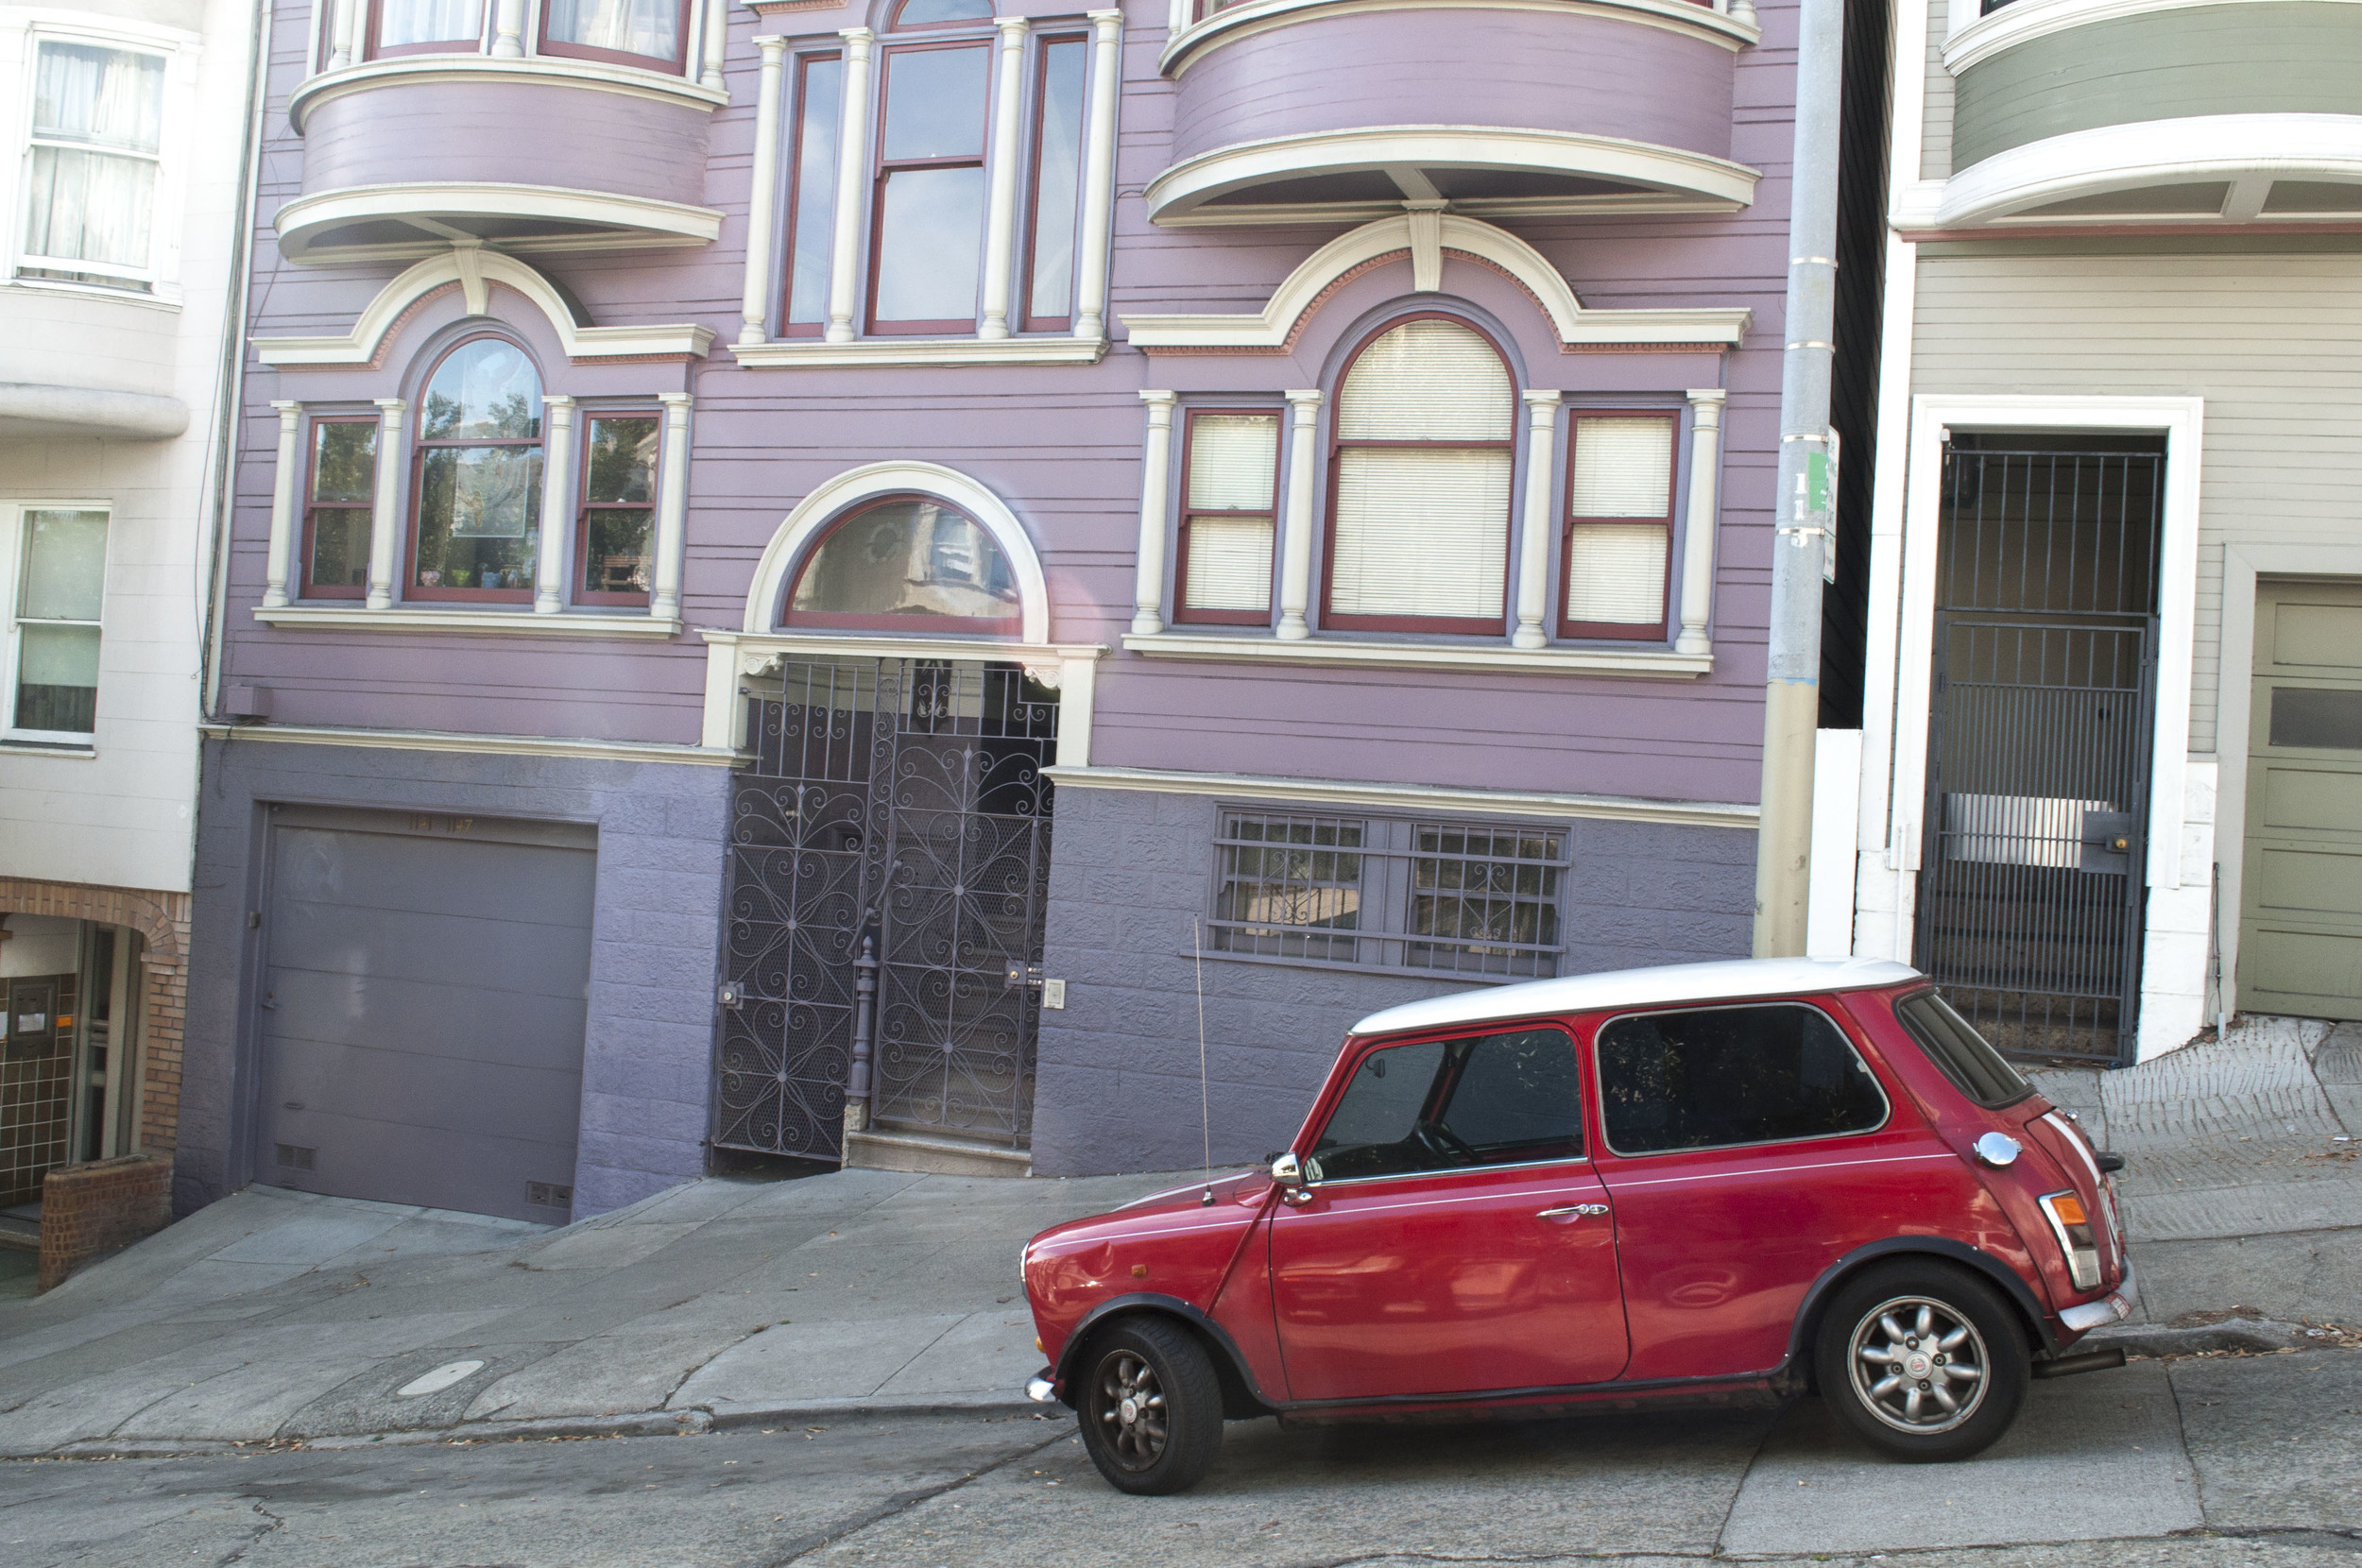 Little Red Mini and Mauve House